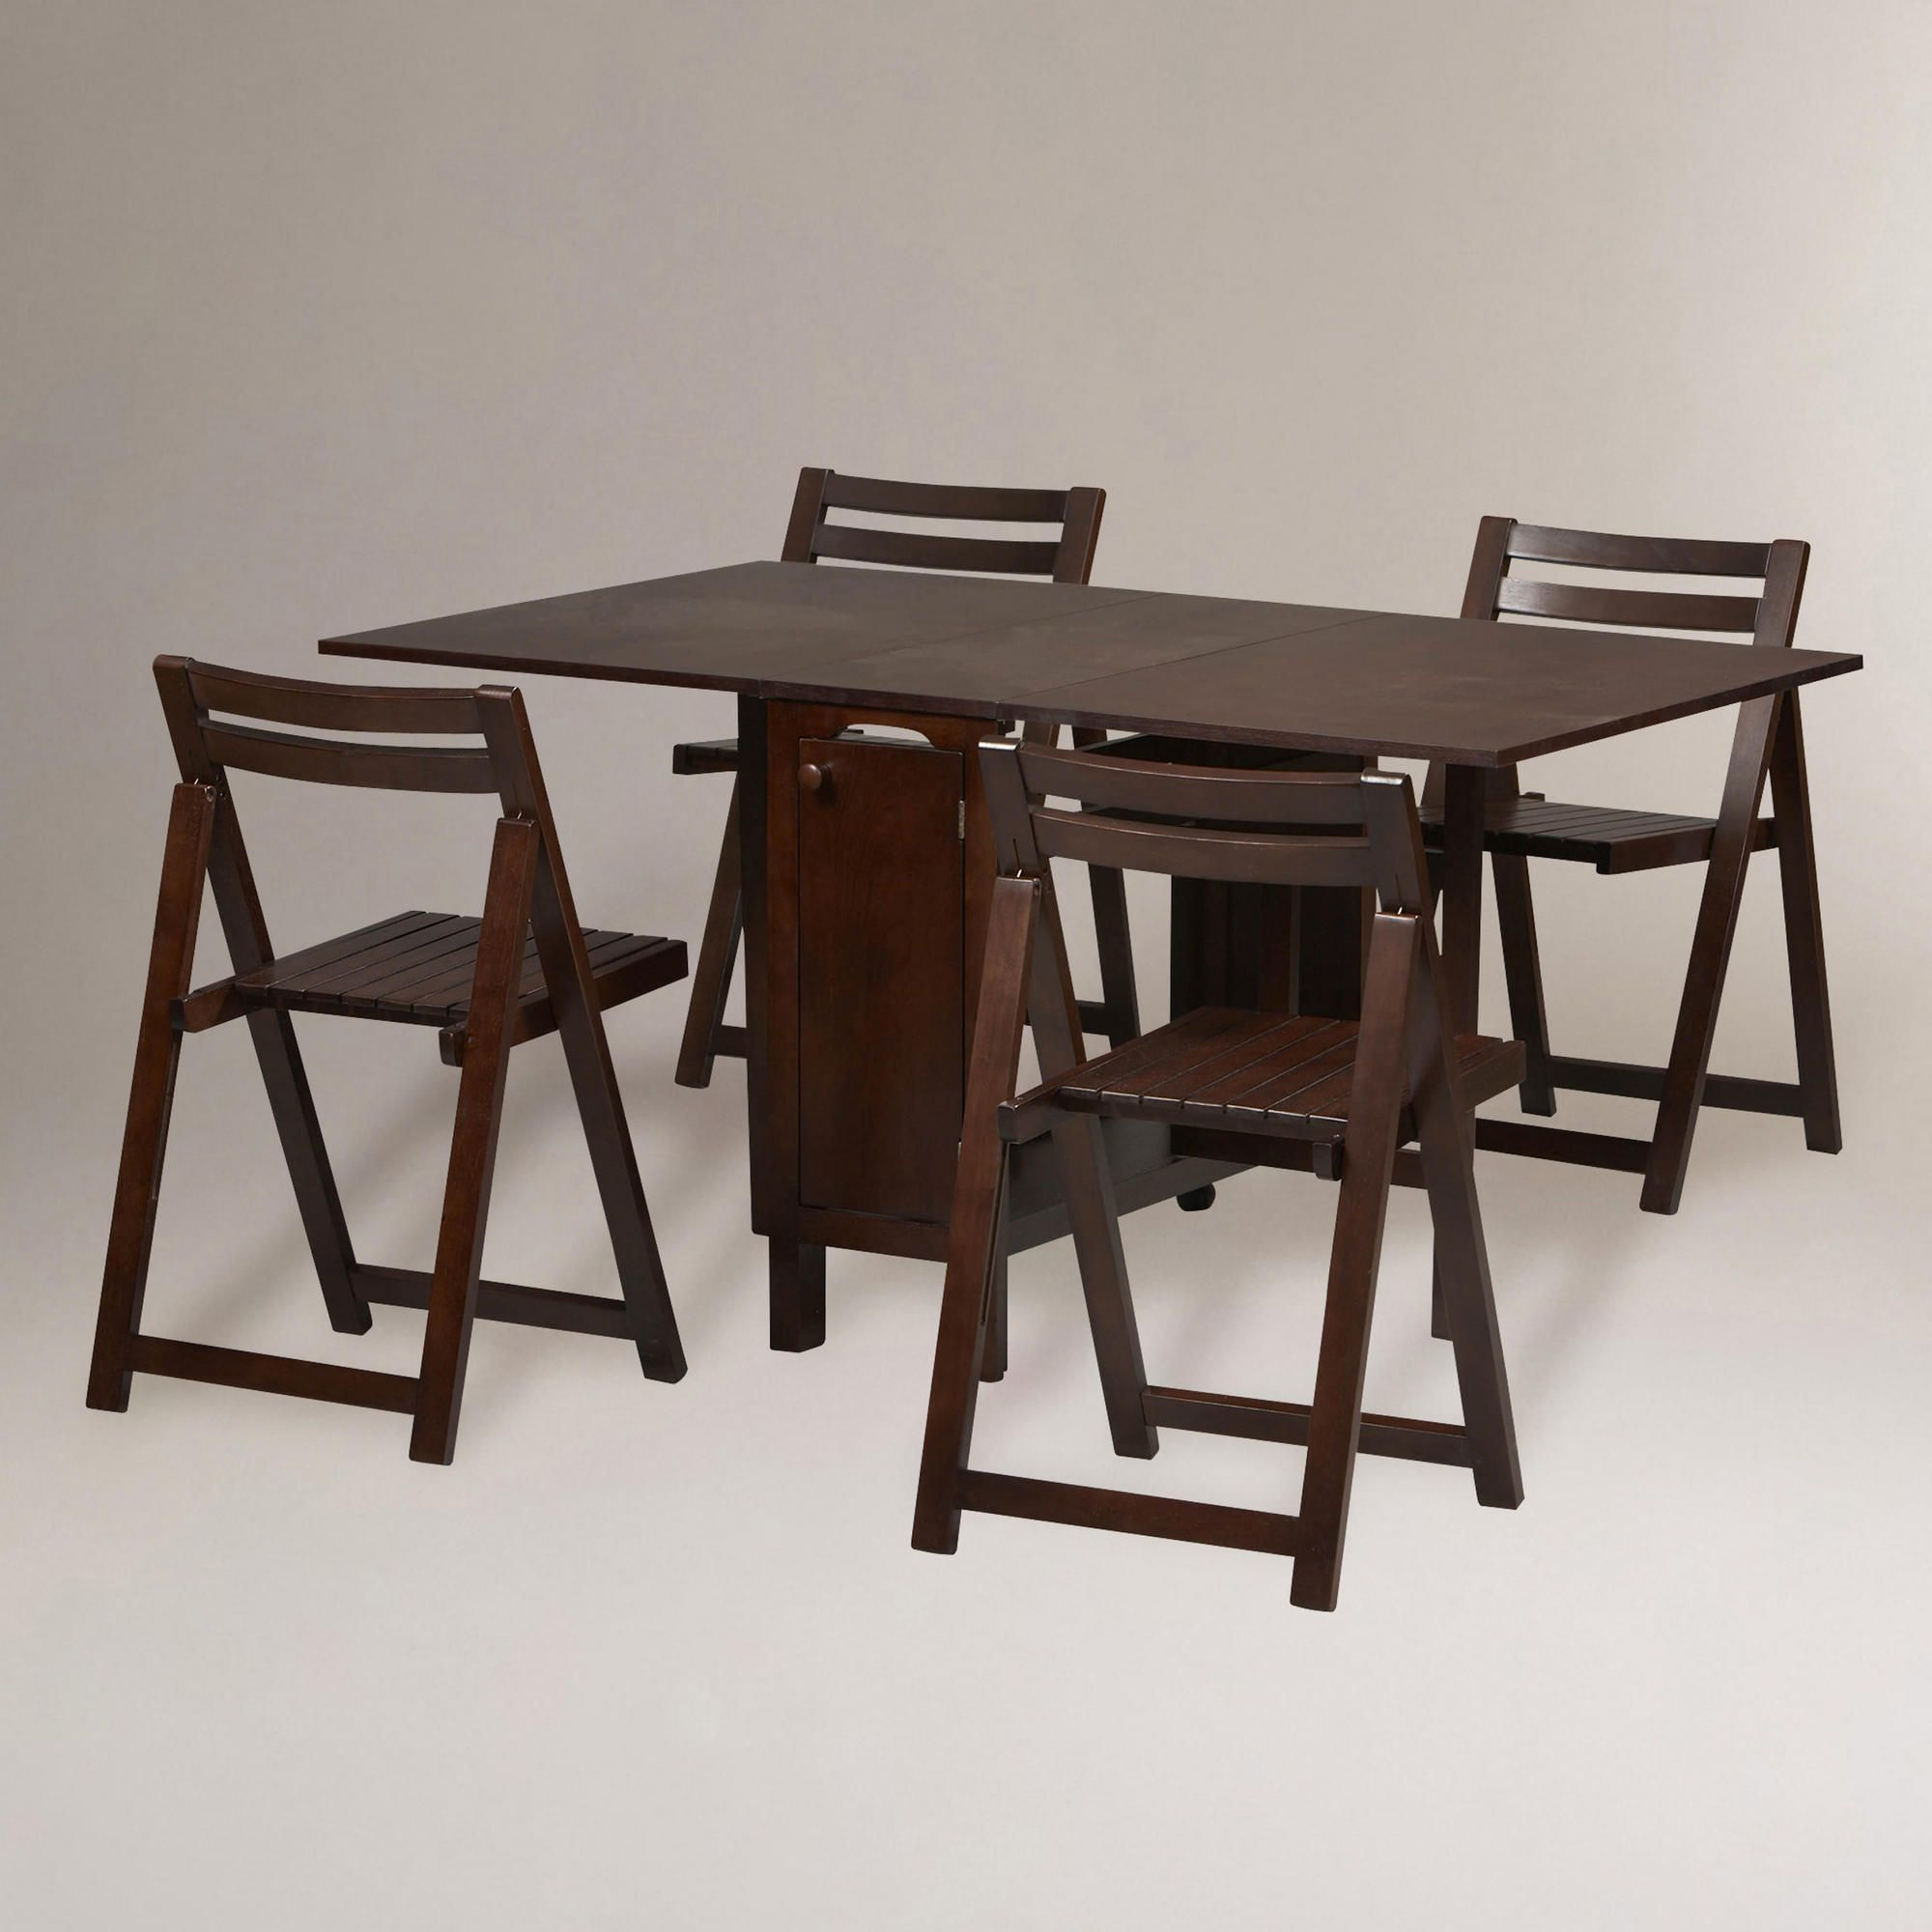 Folding dining table and chair set  Wenge Lawson Space Saver Table u Chair Set  World Market   For